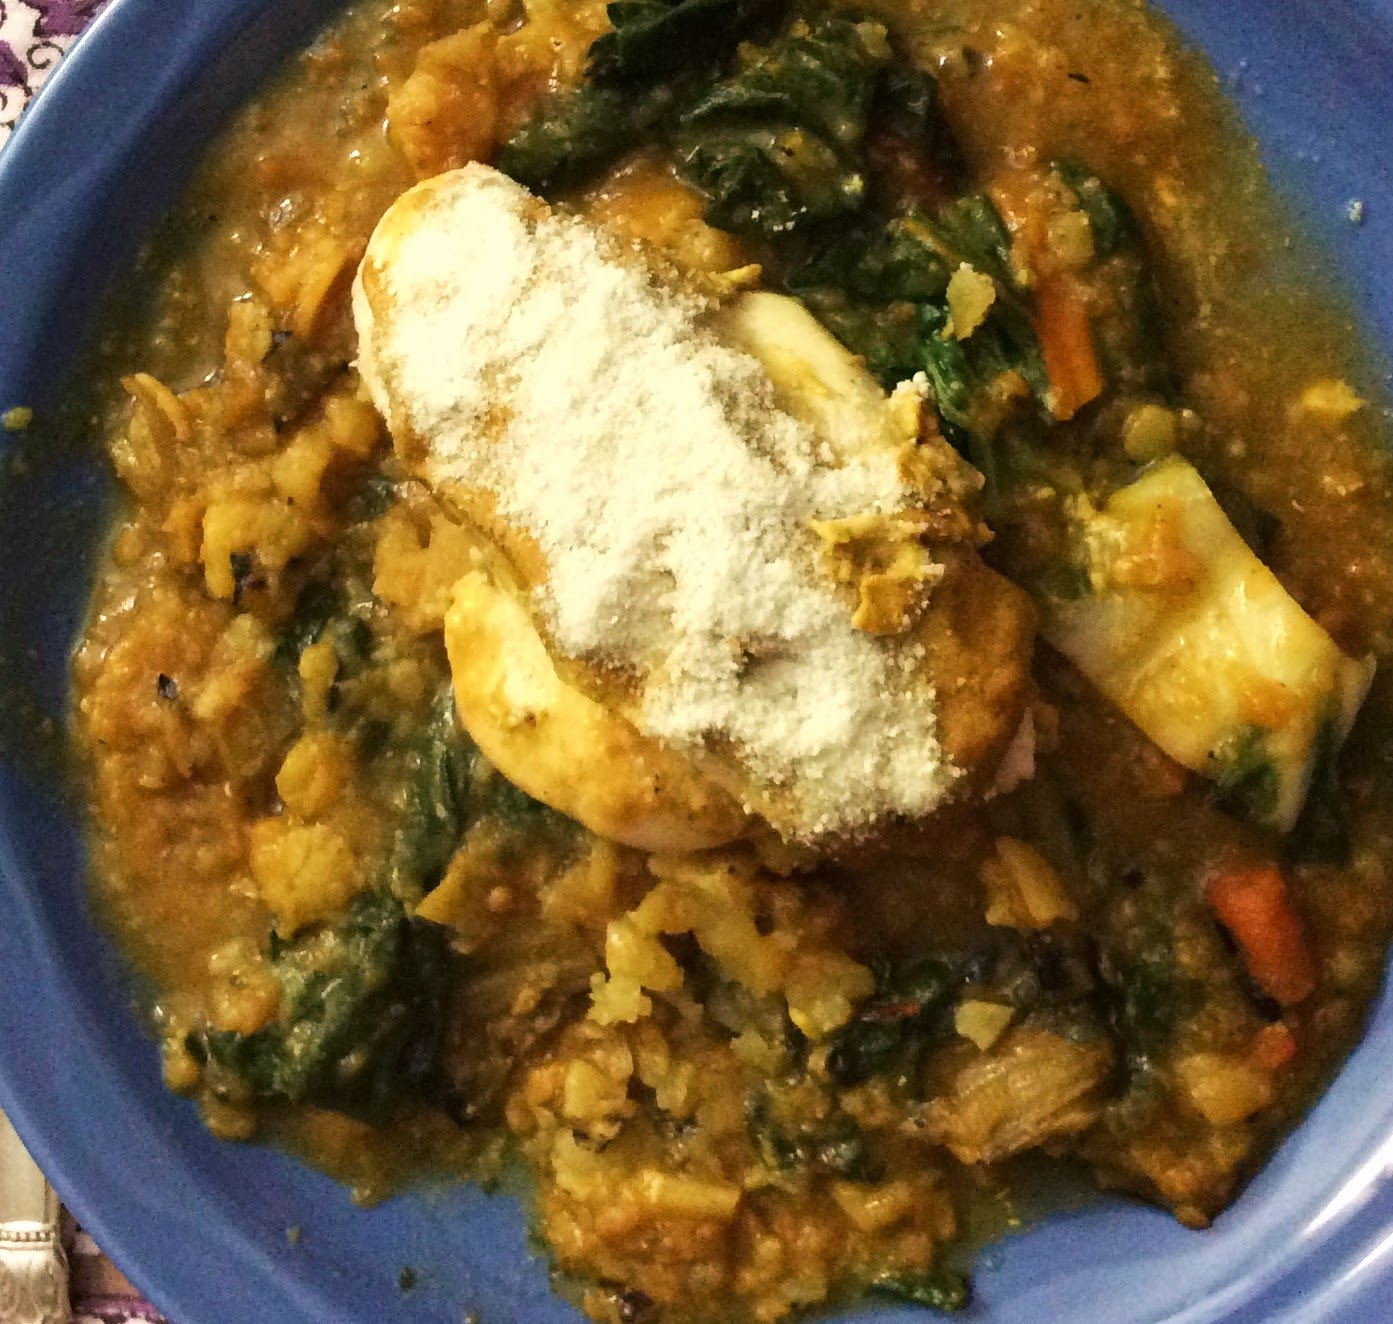 ... and the Vegetarian: Chard, Red Lentil & Potato Slow Cooker Soup